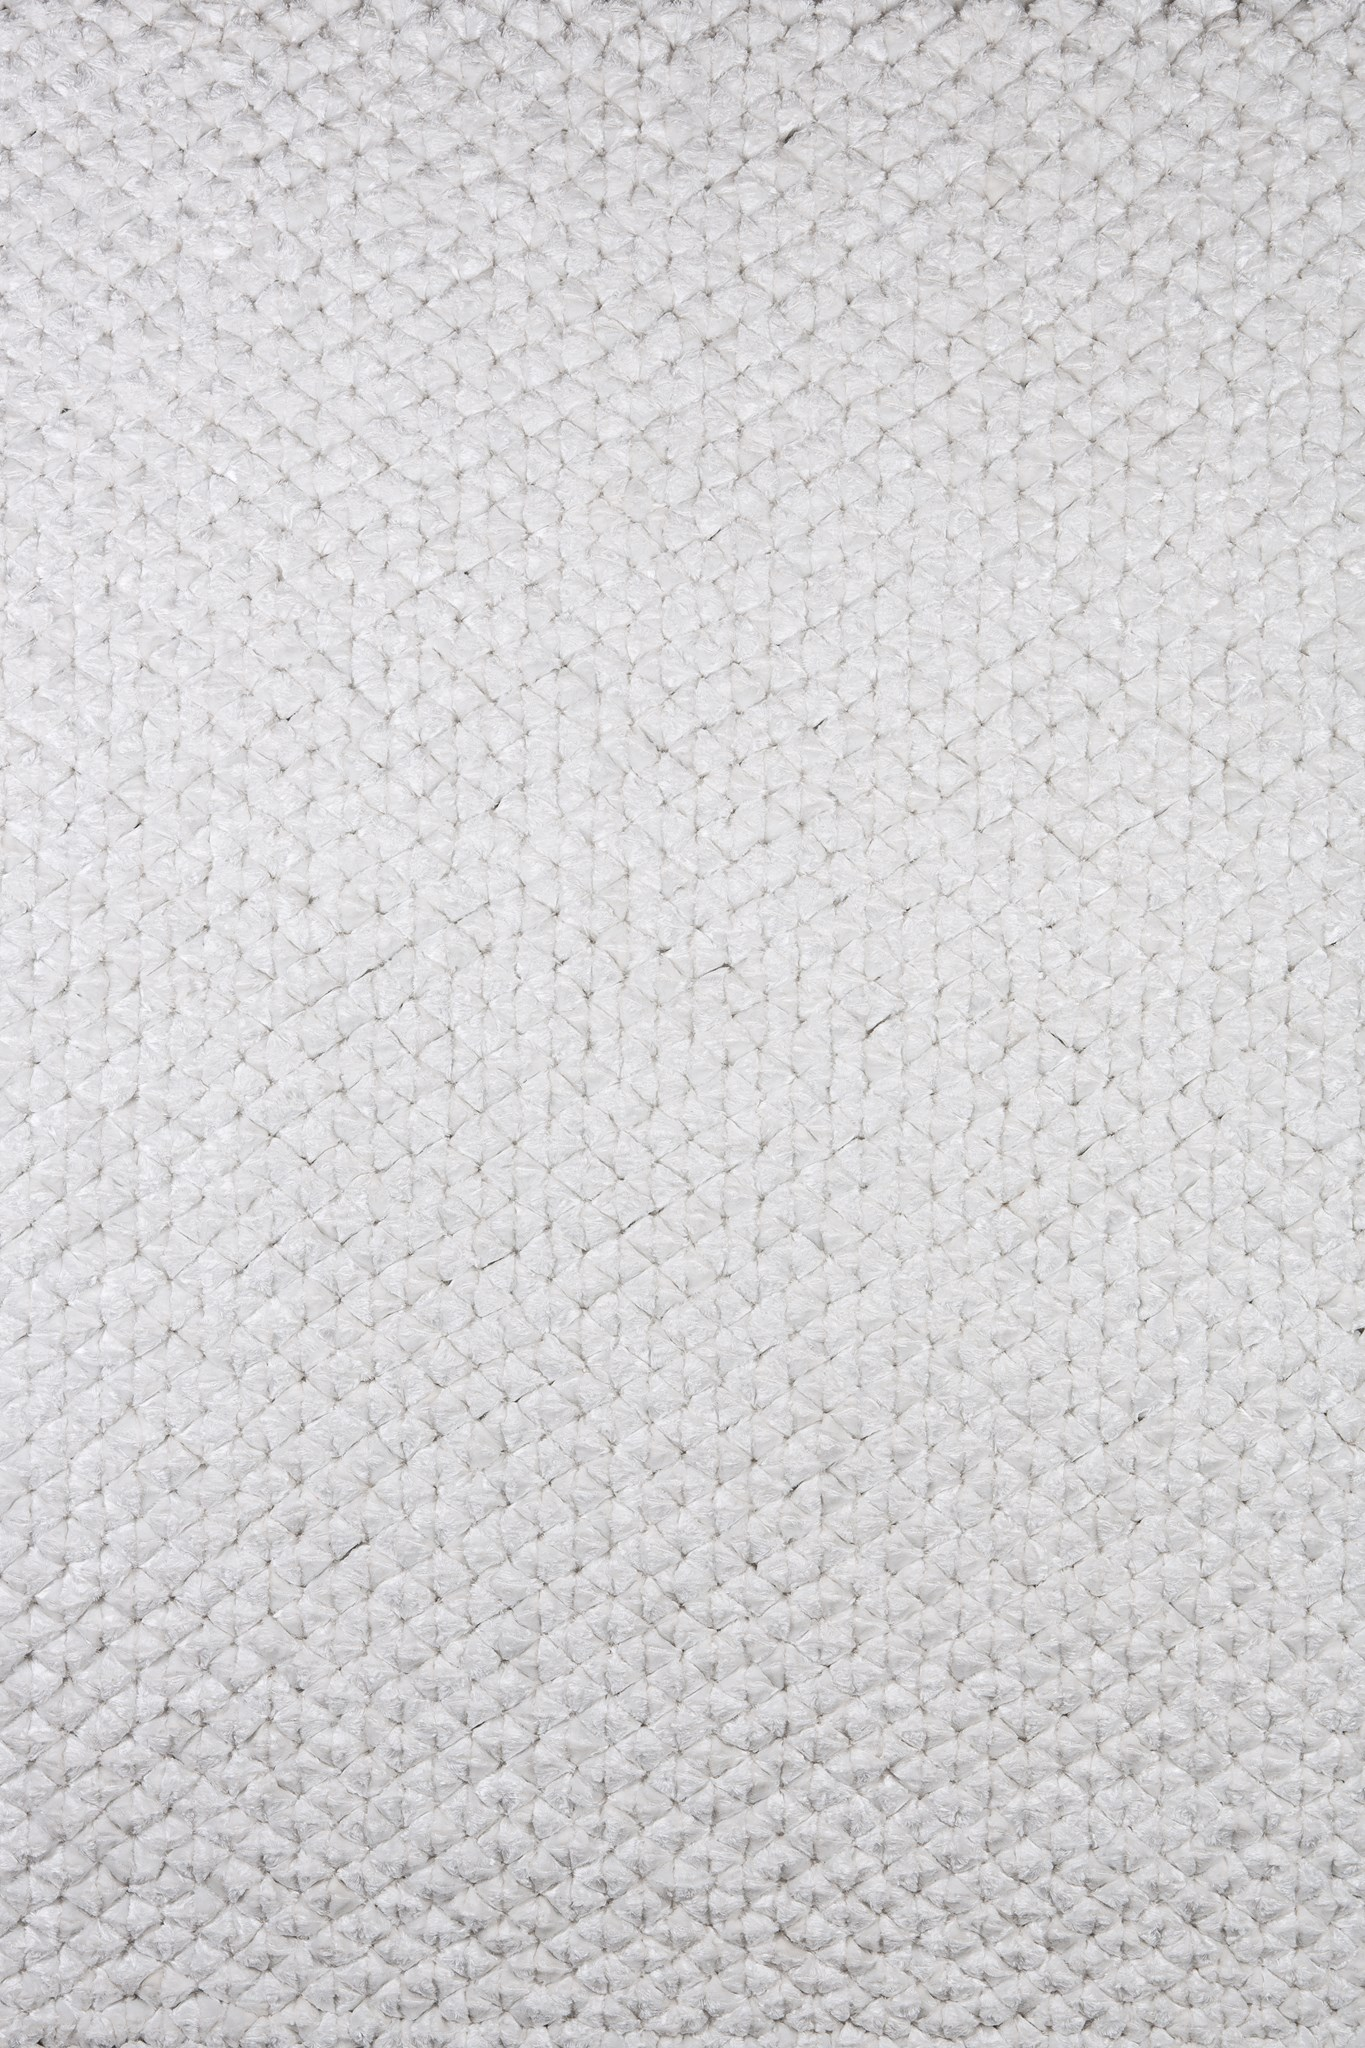 Shimmer Pebble Rug: 6'x9' Platinum